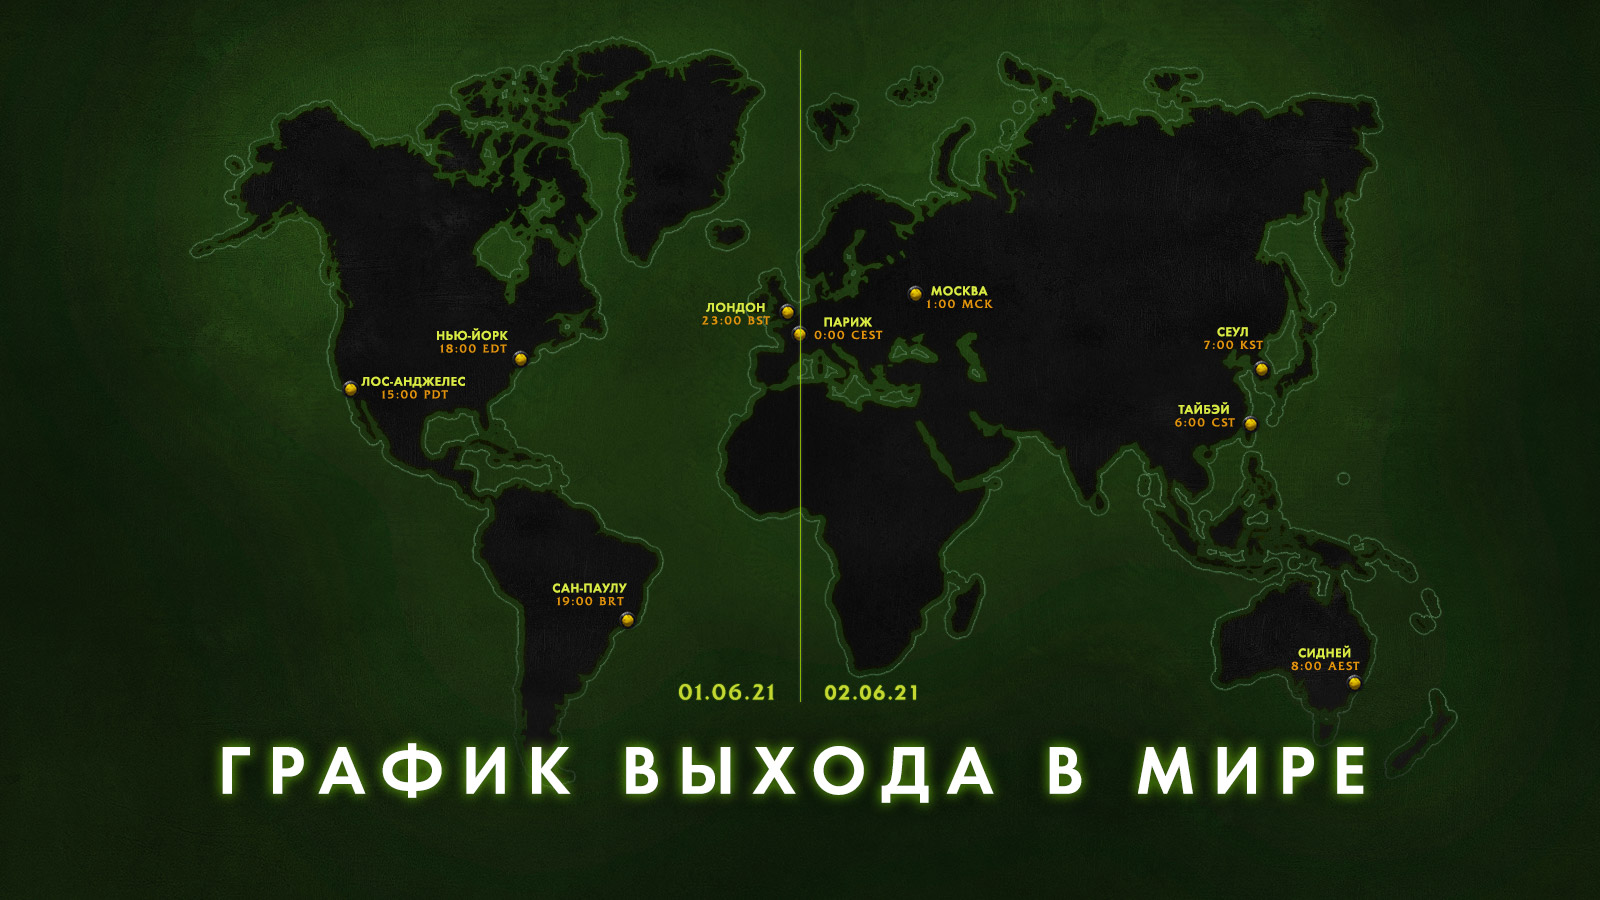 Названа дата выхода дополнения Burning Crusade Classic к ванильной версии World of Warcraft